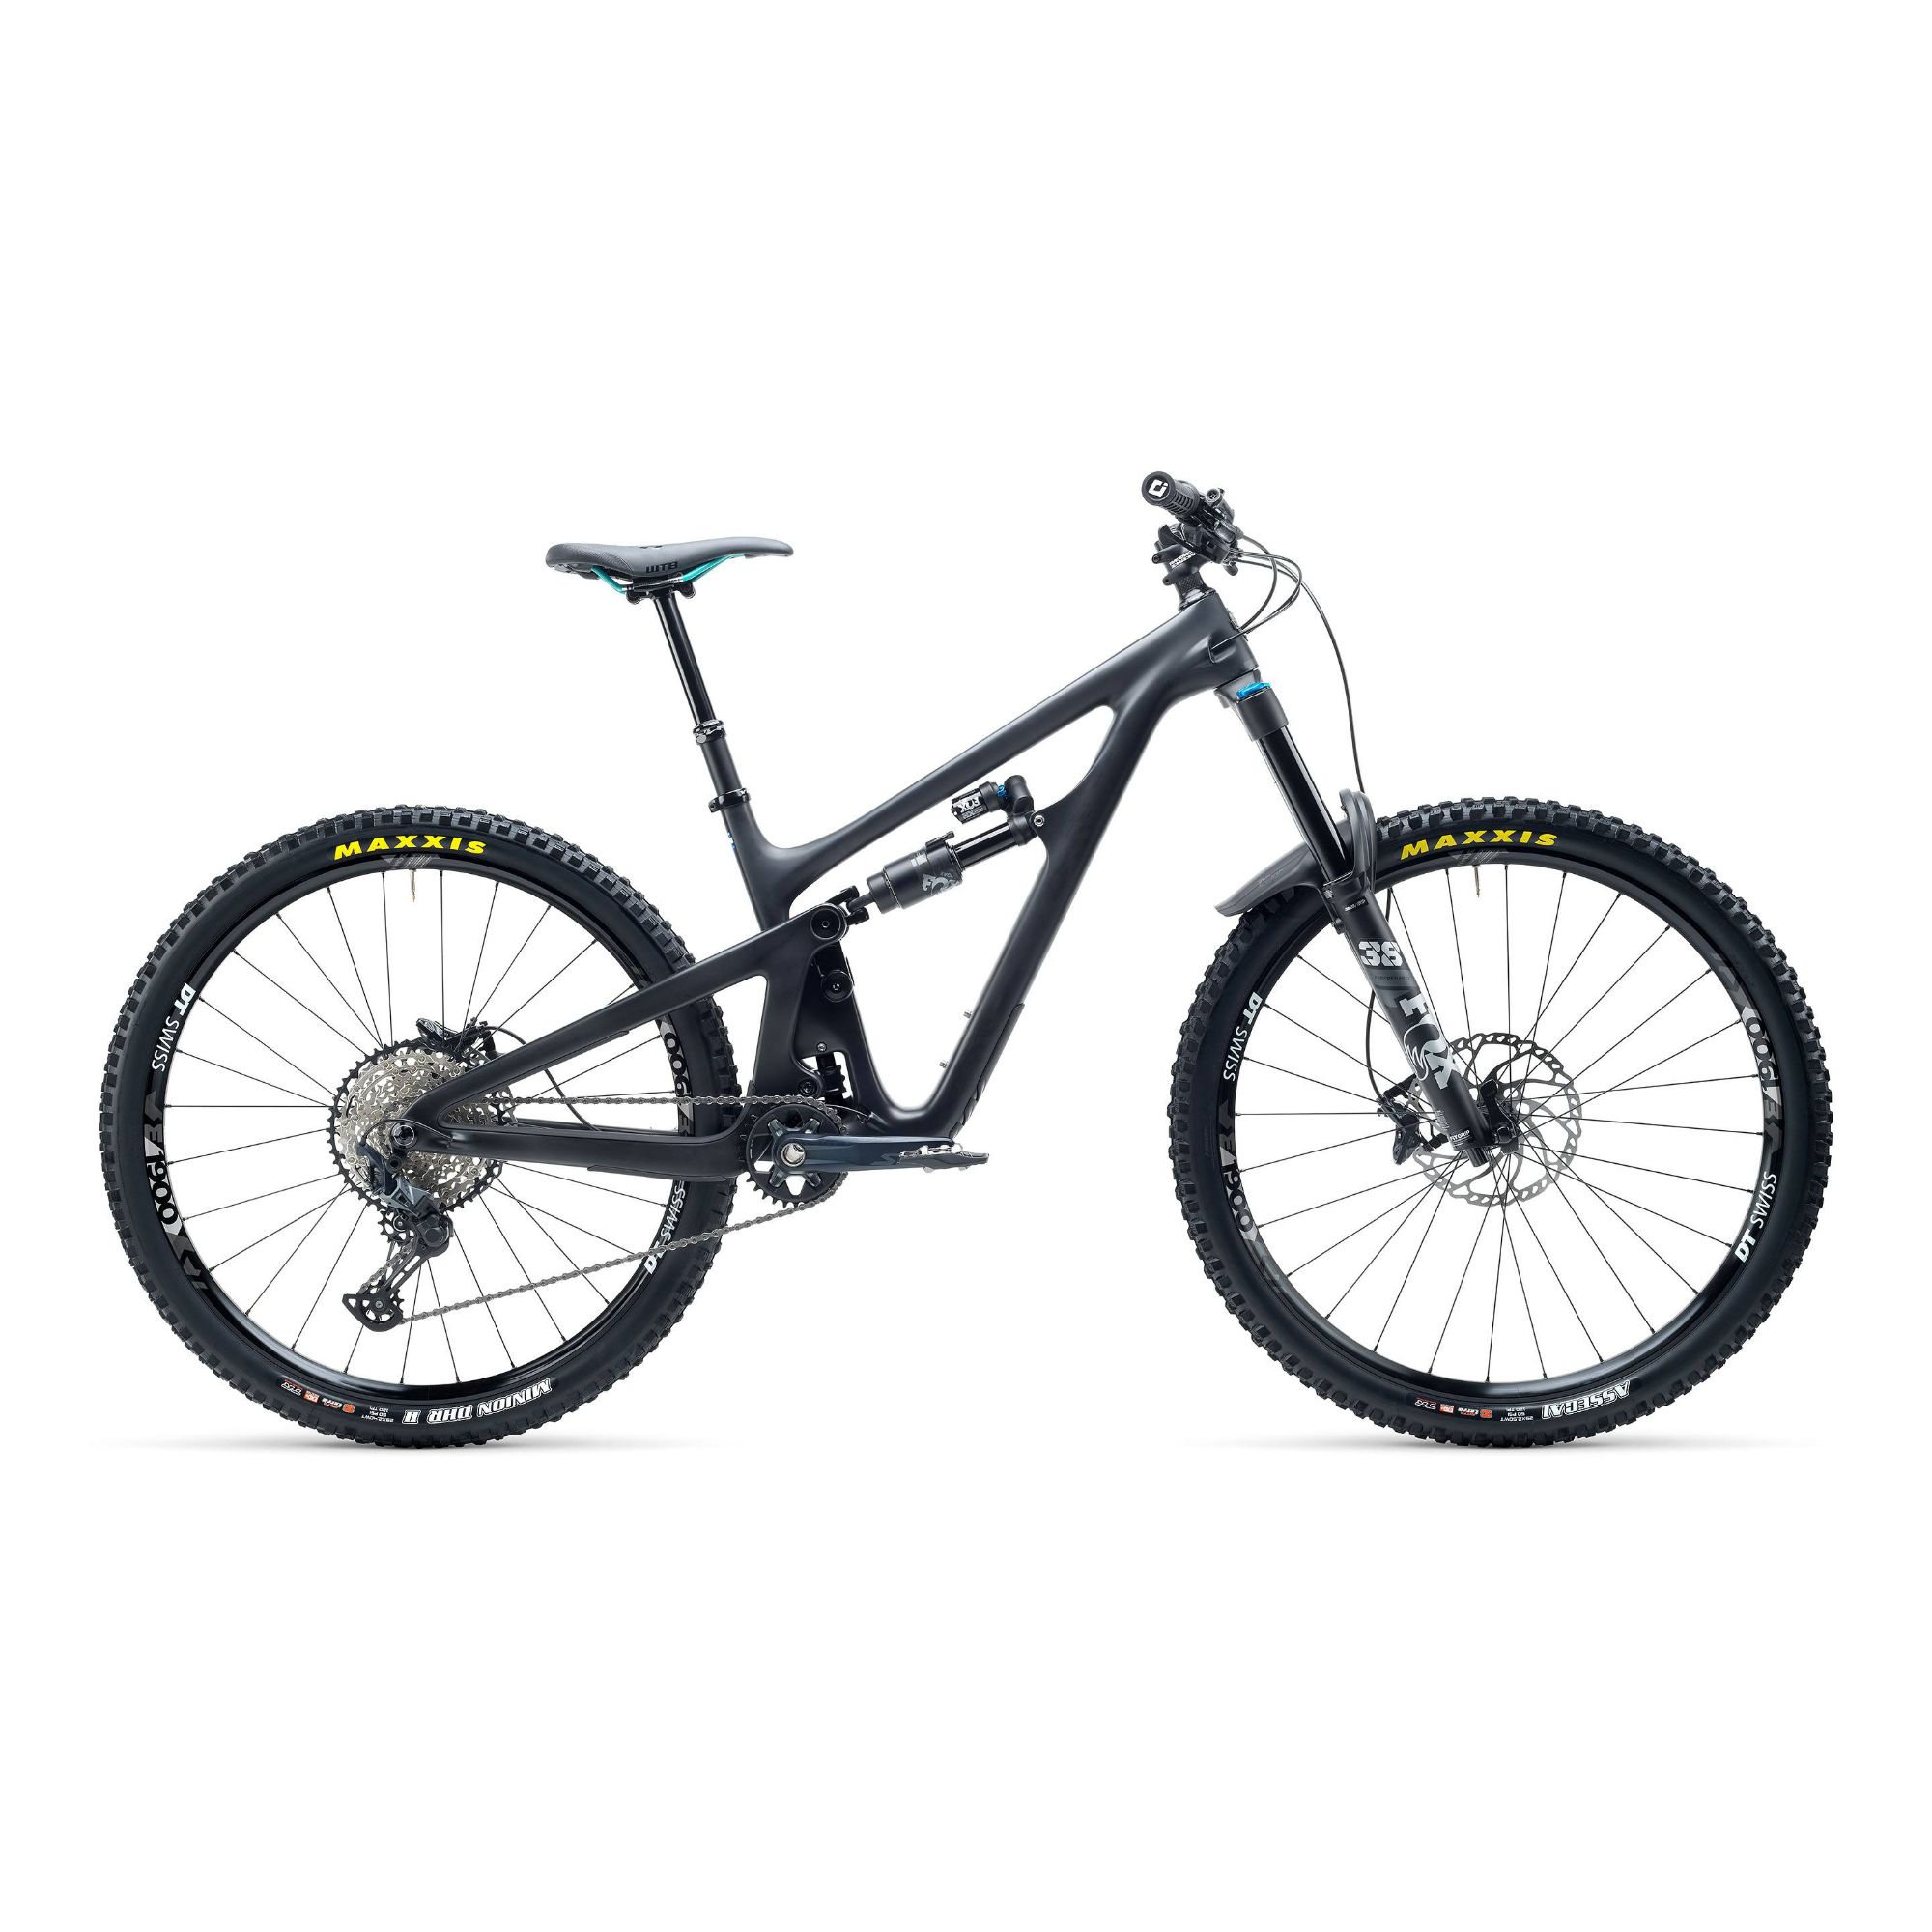 Yeti SB150 C Series C1 29ER SLX Carbon Mountain Bike 2021 Raw/Grey